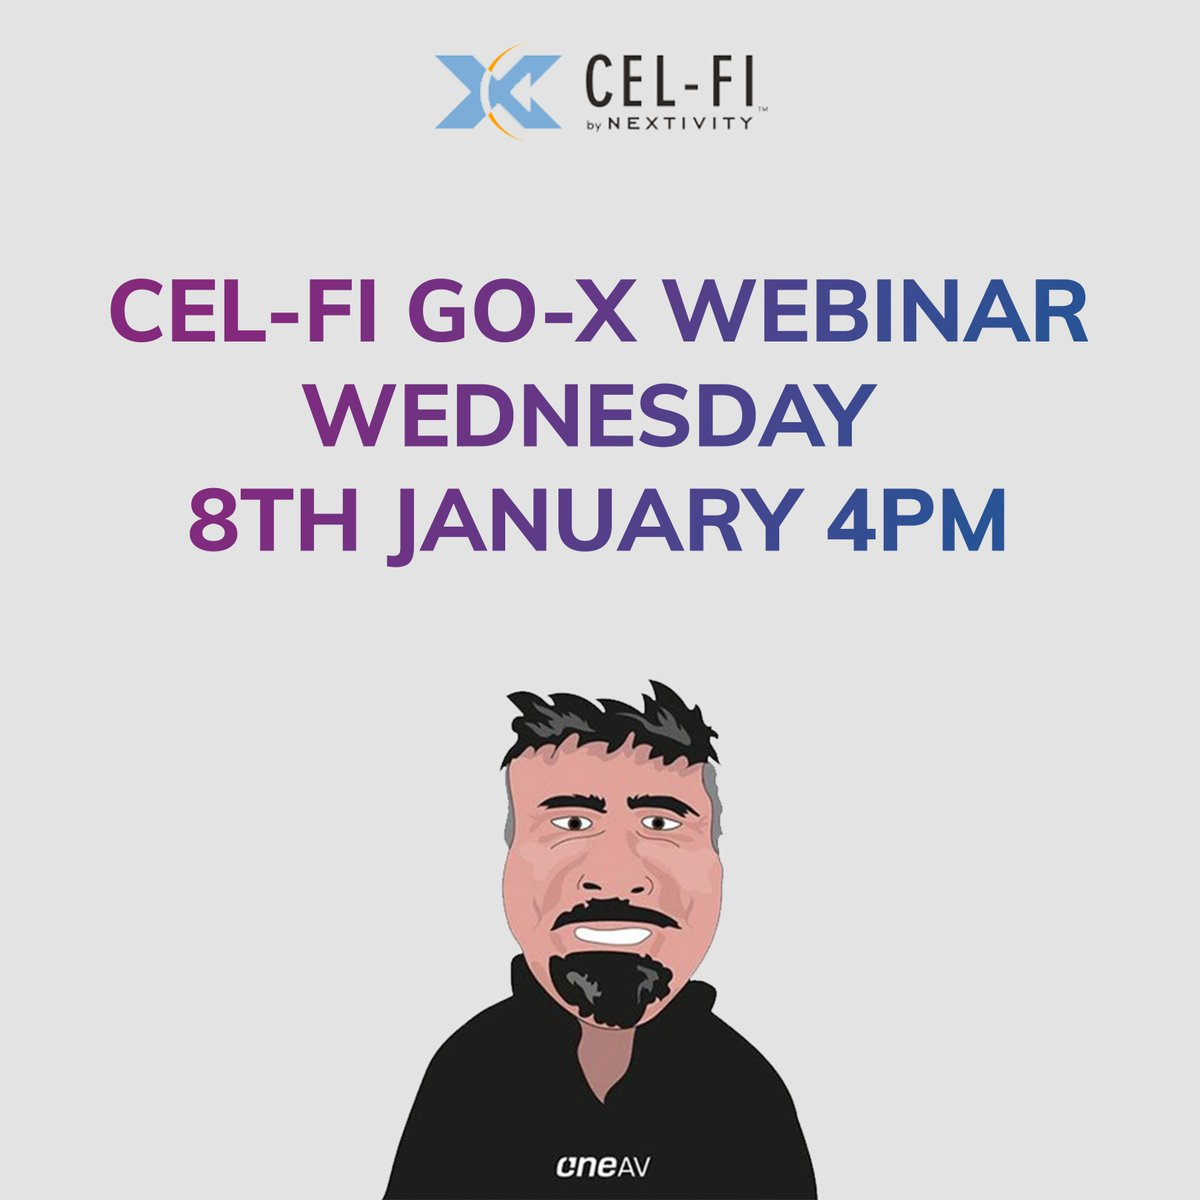 We're hosting part three of our Cel-Fi by Nextivity webinar series on the 8th of January at 4 pm! Registration link below!  https://oneav.webinarninja.com/live-webinars/177446/register?in_tok=b57d01a7-055f-440b-b580-fab19a2d8422 …  #customintegration #custominstall #homeautomation #distribution #technology #audiovisual #hdbaset #hdmi #oneav #video #hdbtpic.twitter.com/5J1bYvVTa1